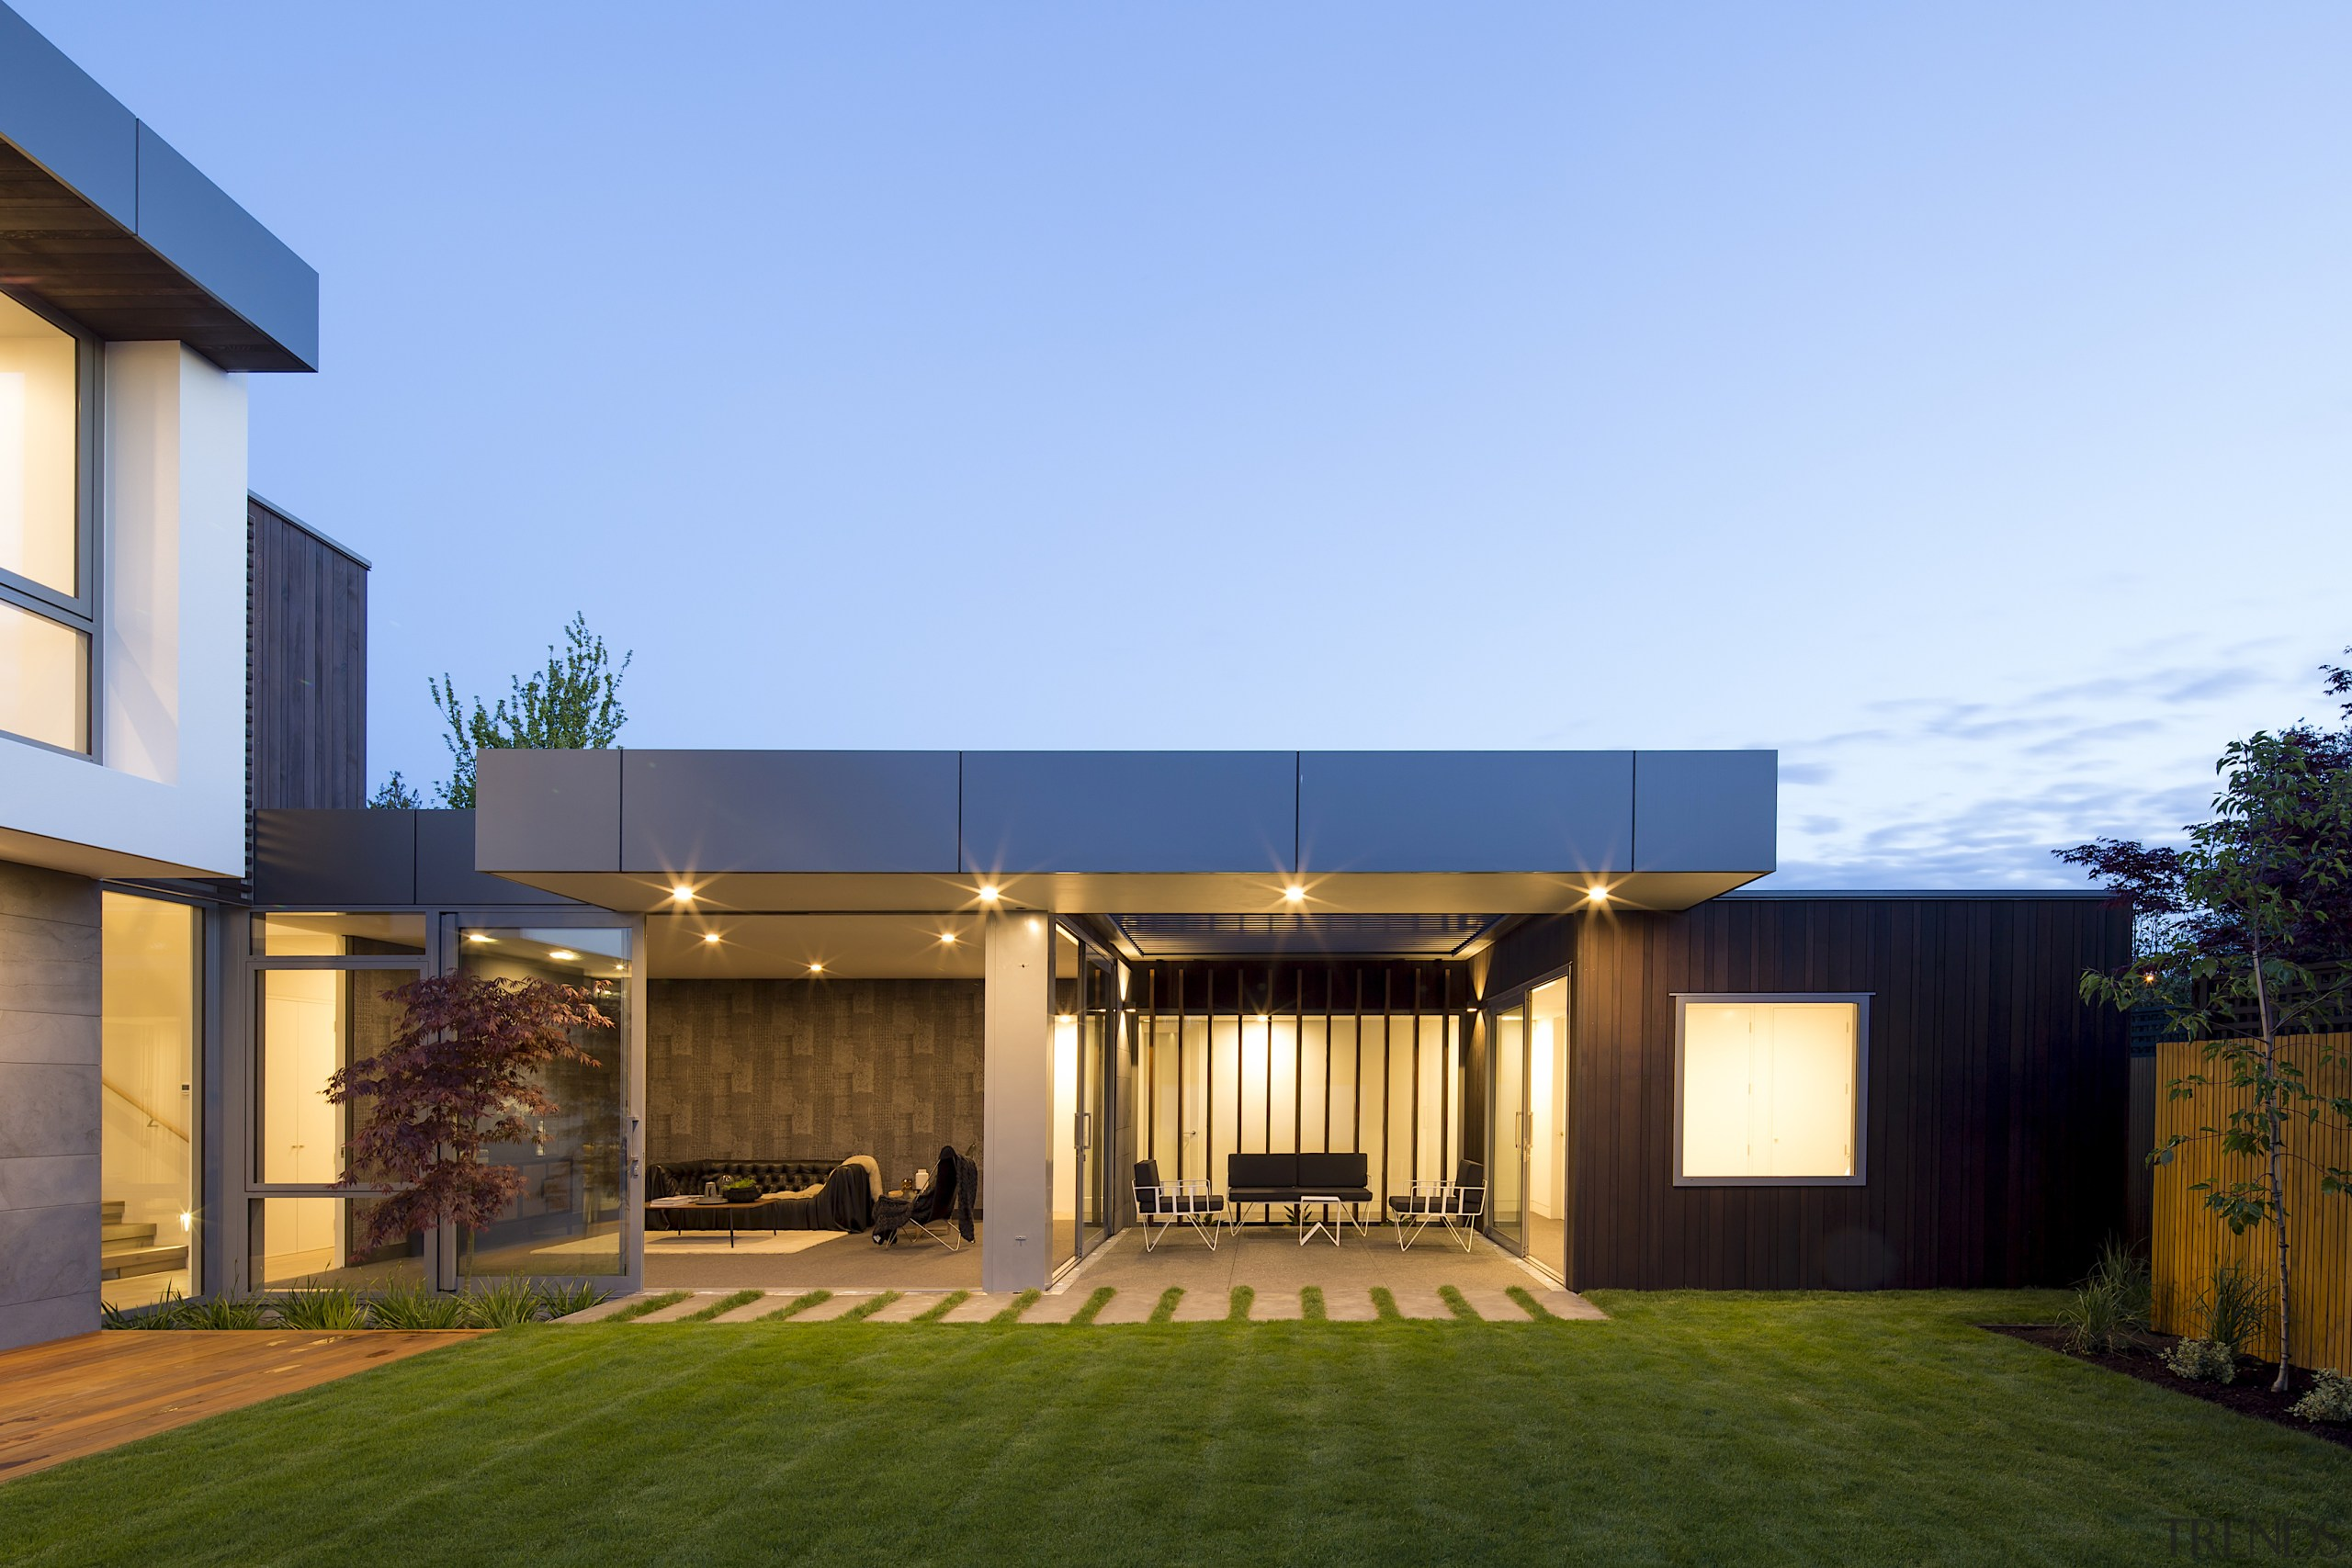 The outdoor room separates the home's fourth bedroom